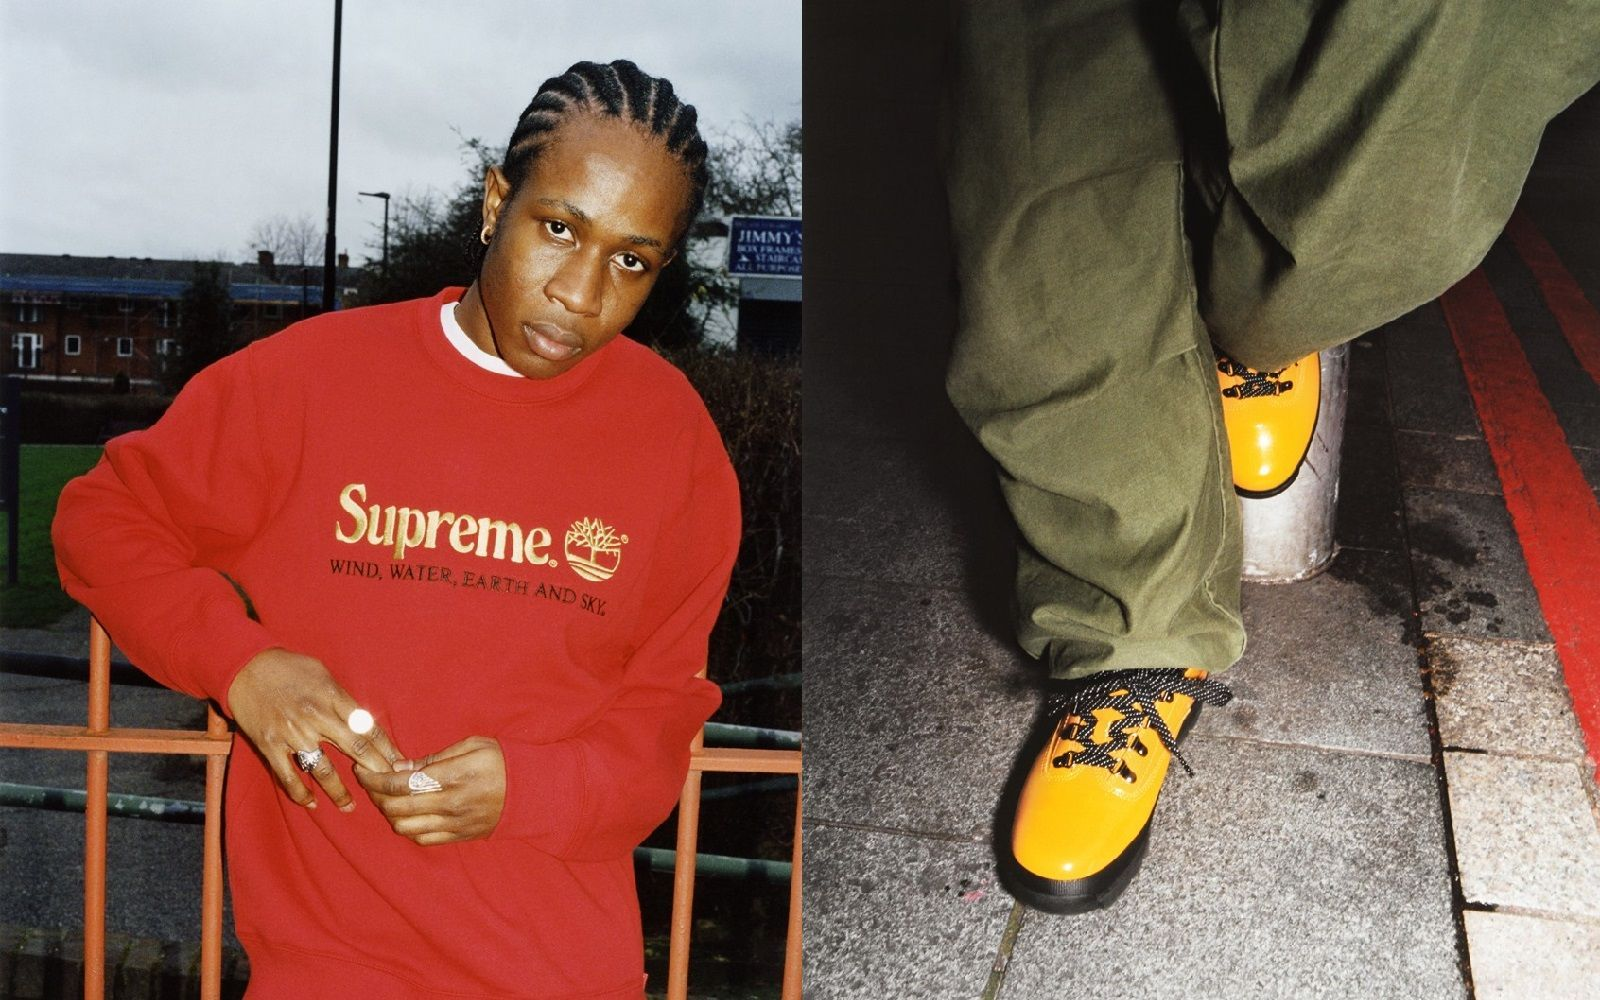 Supreme x Timberland capsule collection